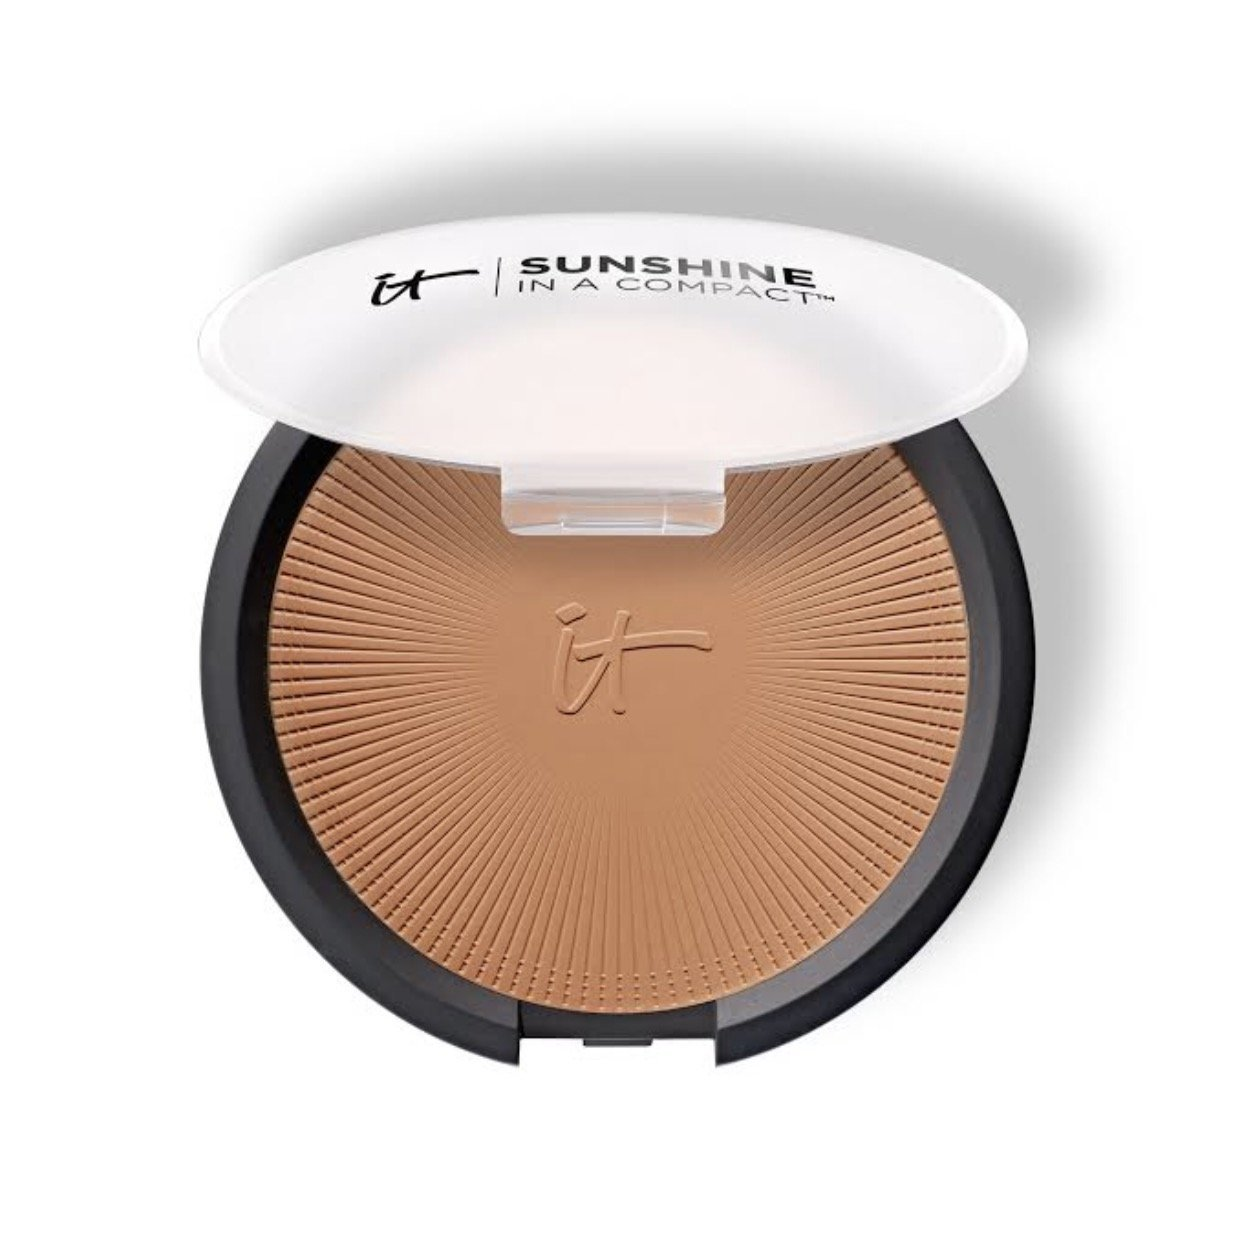 It Cosmetics Sunshine In A Compact Vitality Anti Aging Matte Bronzer 0.57 oz